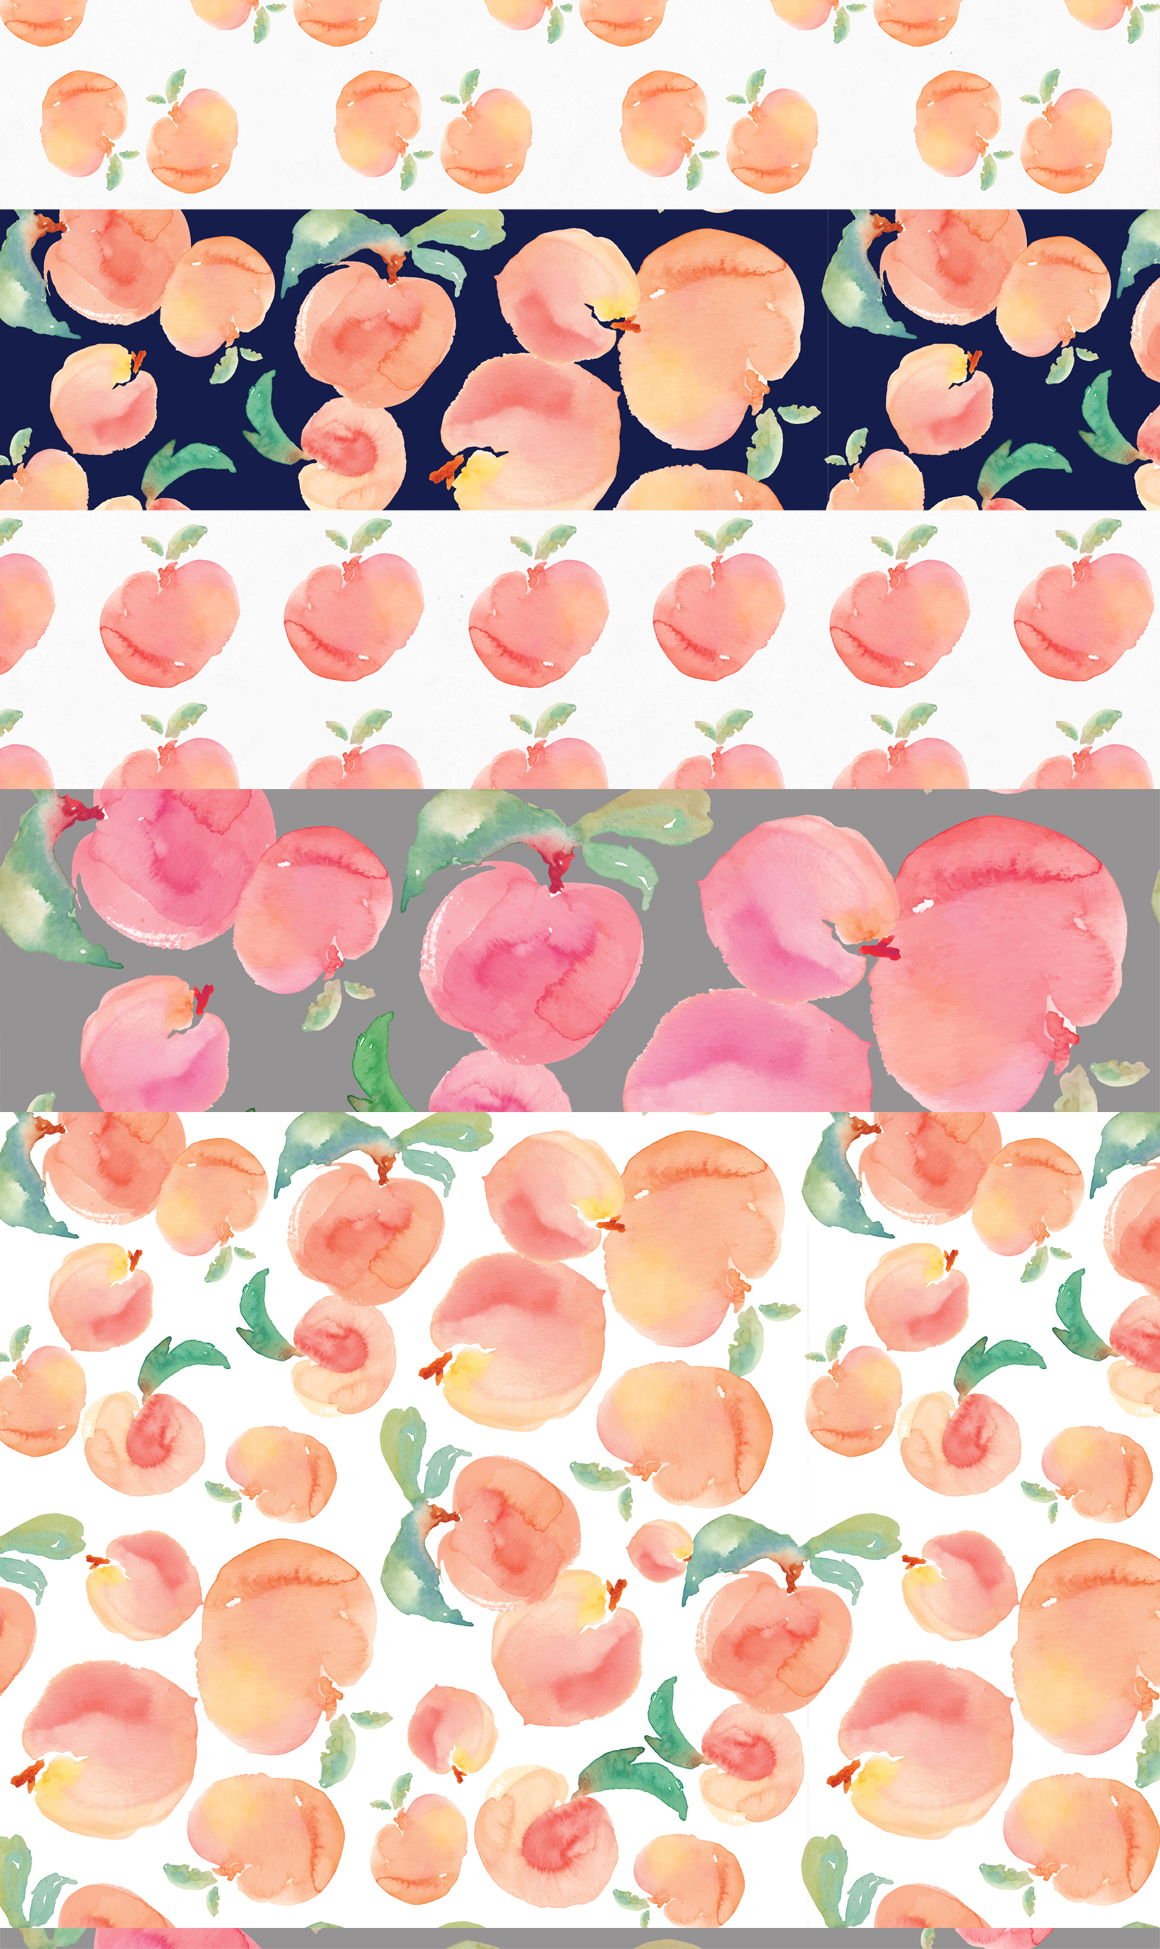 Peach clipart watercolor Art Watercolor Patterns Peaches Watercolor